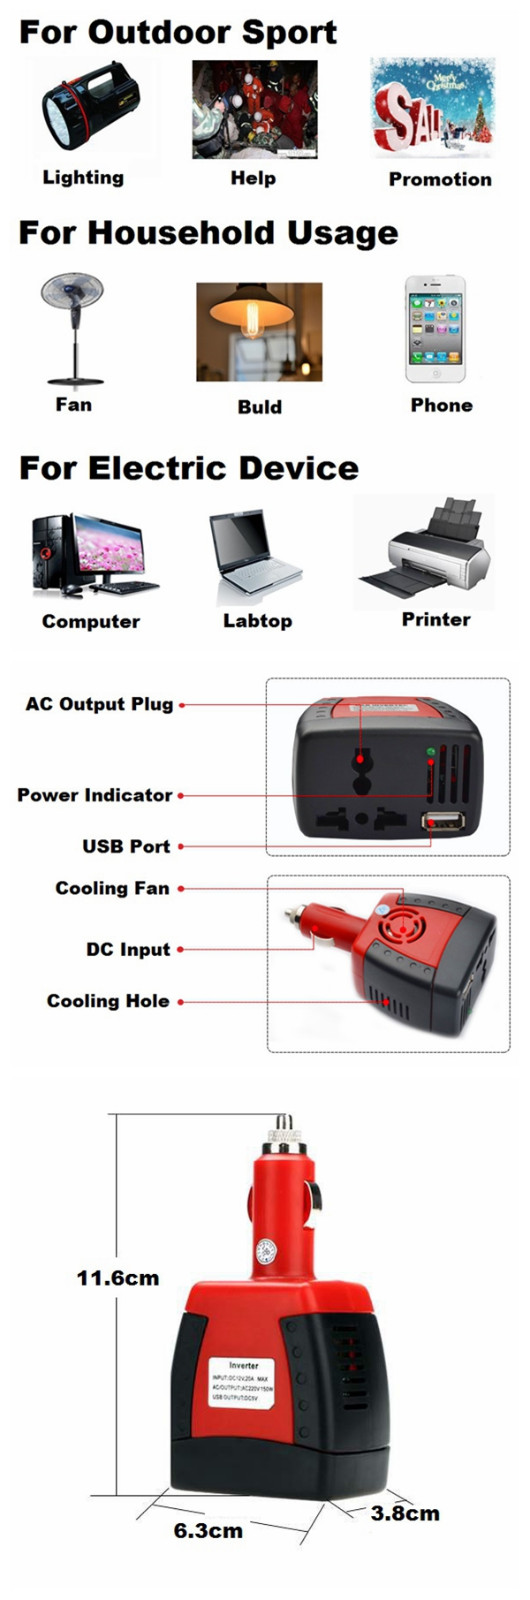 SGR-X1512-1 75W Car Power Inverter Power Supply Adapater Transformer DC 12V to AC 220V with USB Charger Port